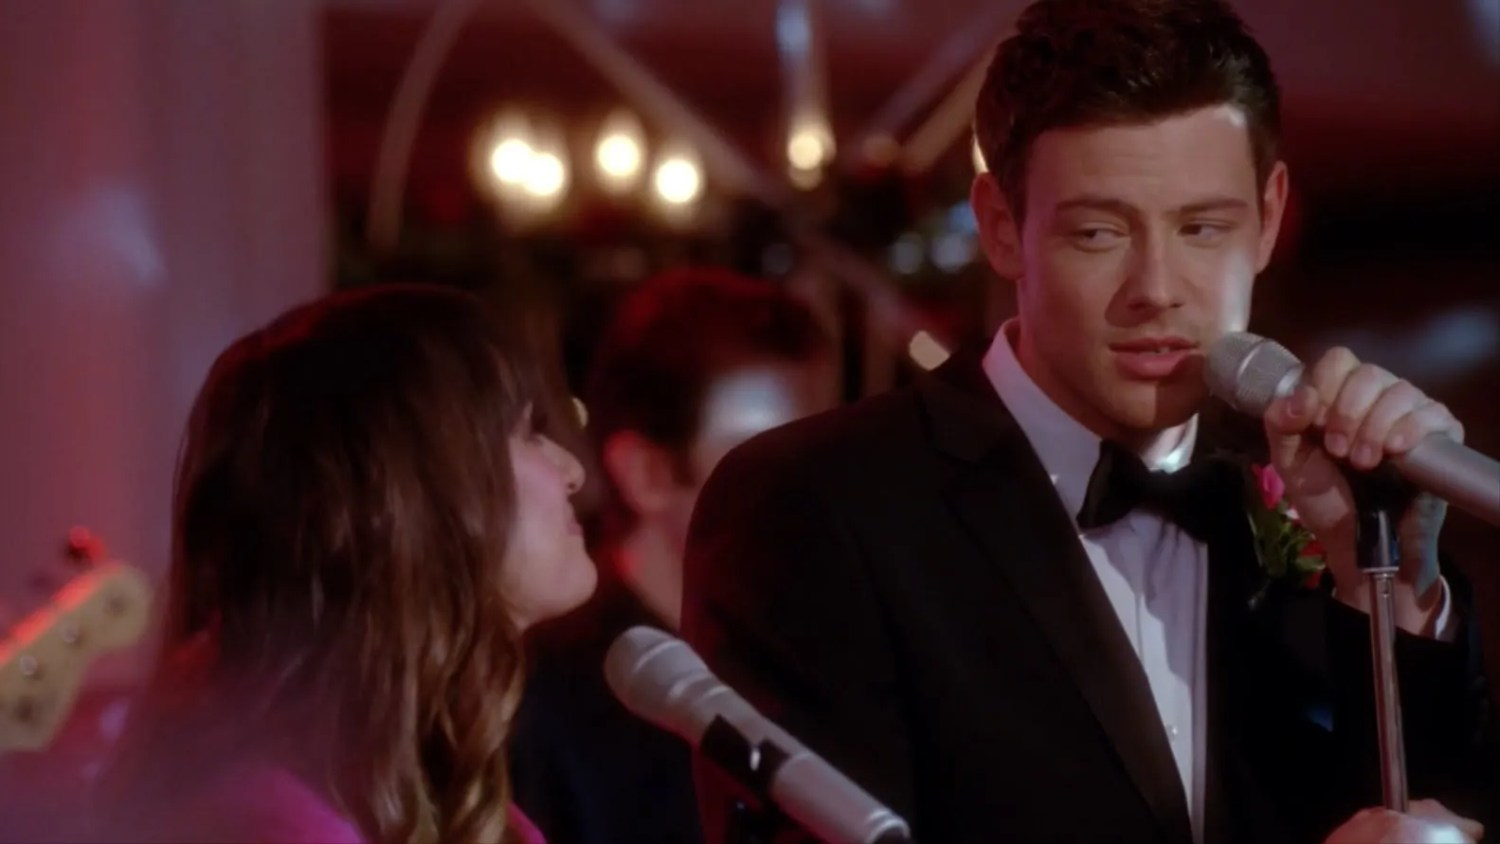 were finn and rachel dating in real life